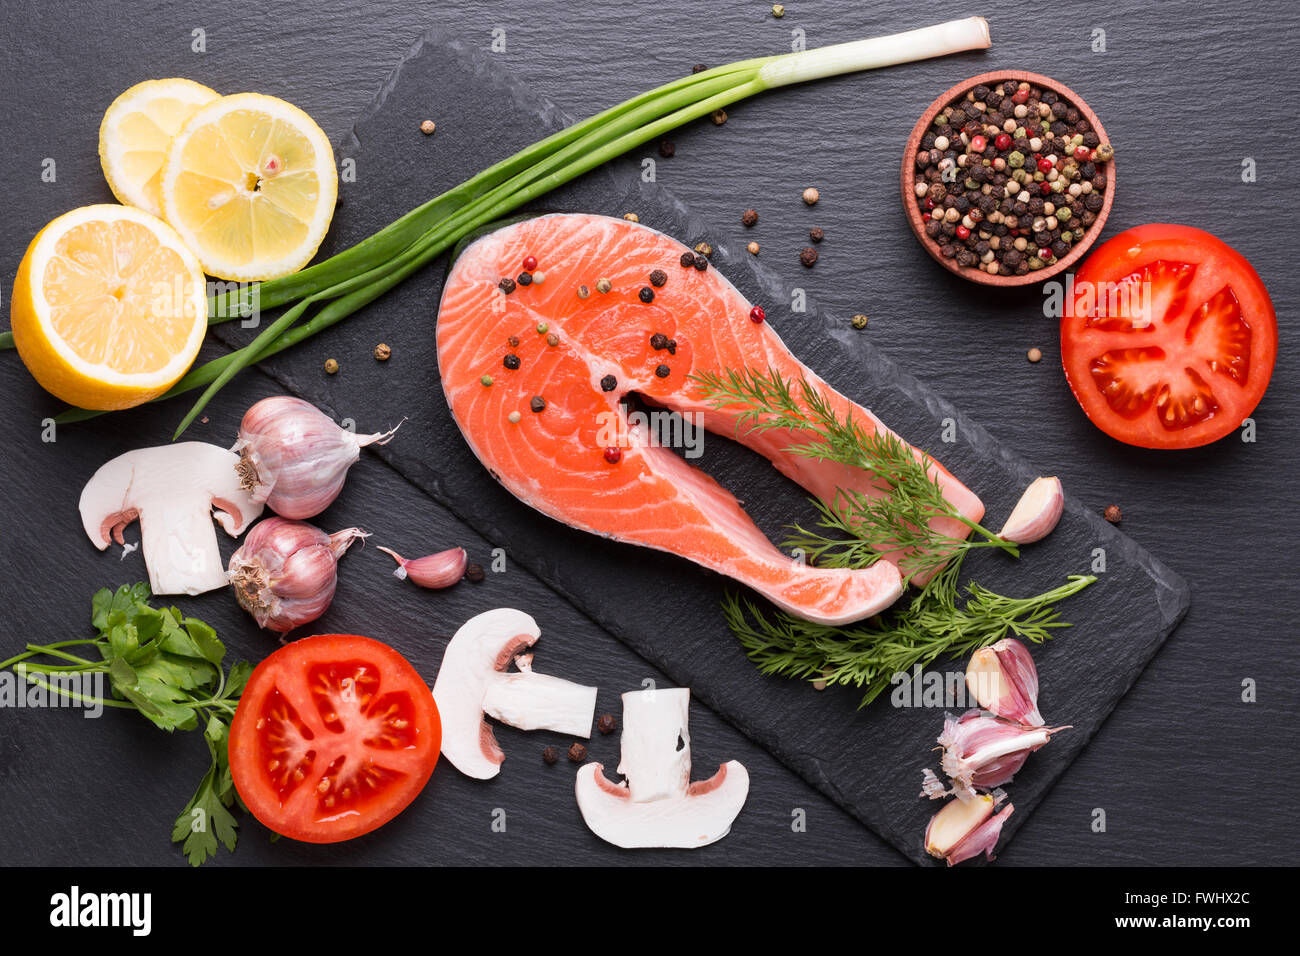 red fish steak with spices and vegetables on a slate table. - Stock Image